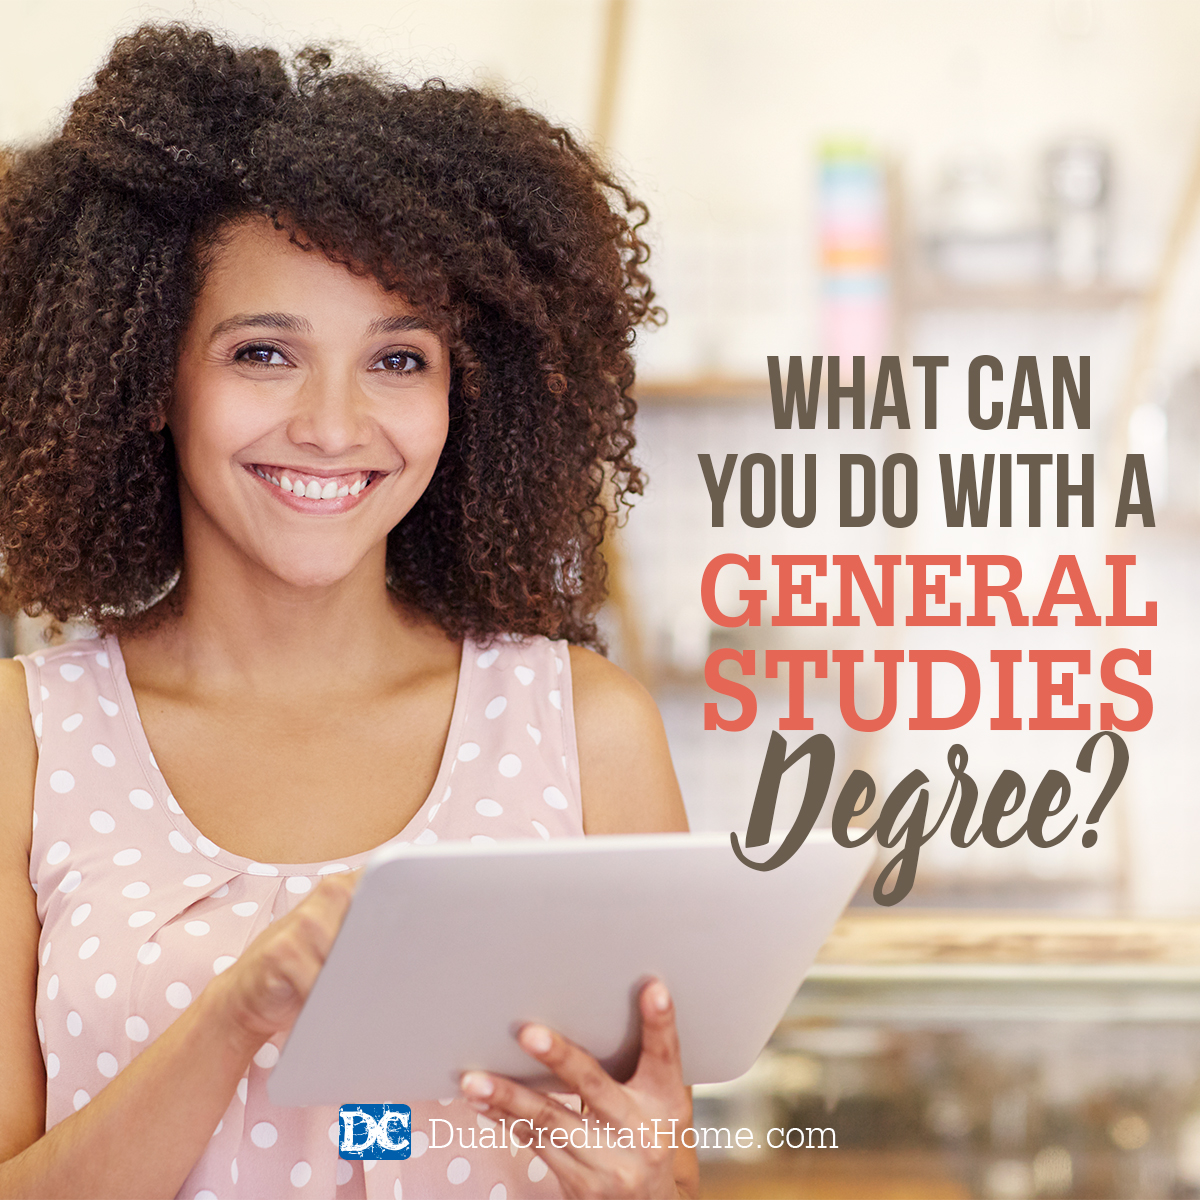 What Can You Do with a General Studies Degree?